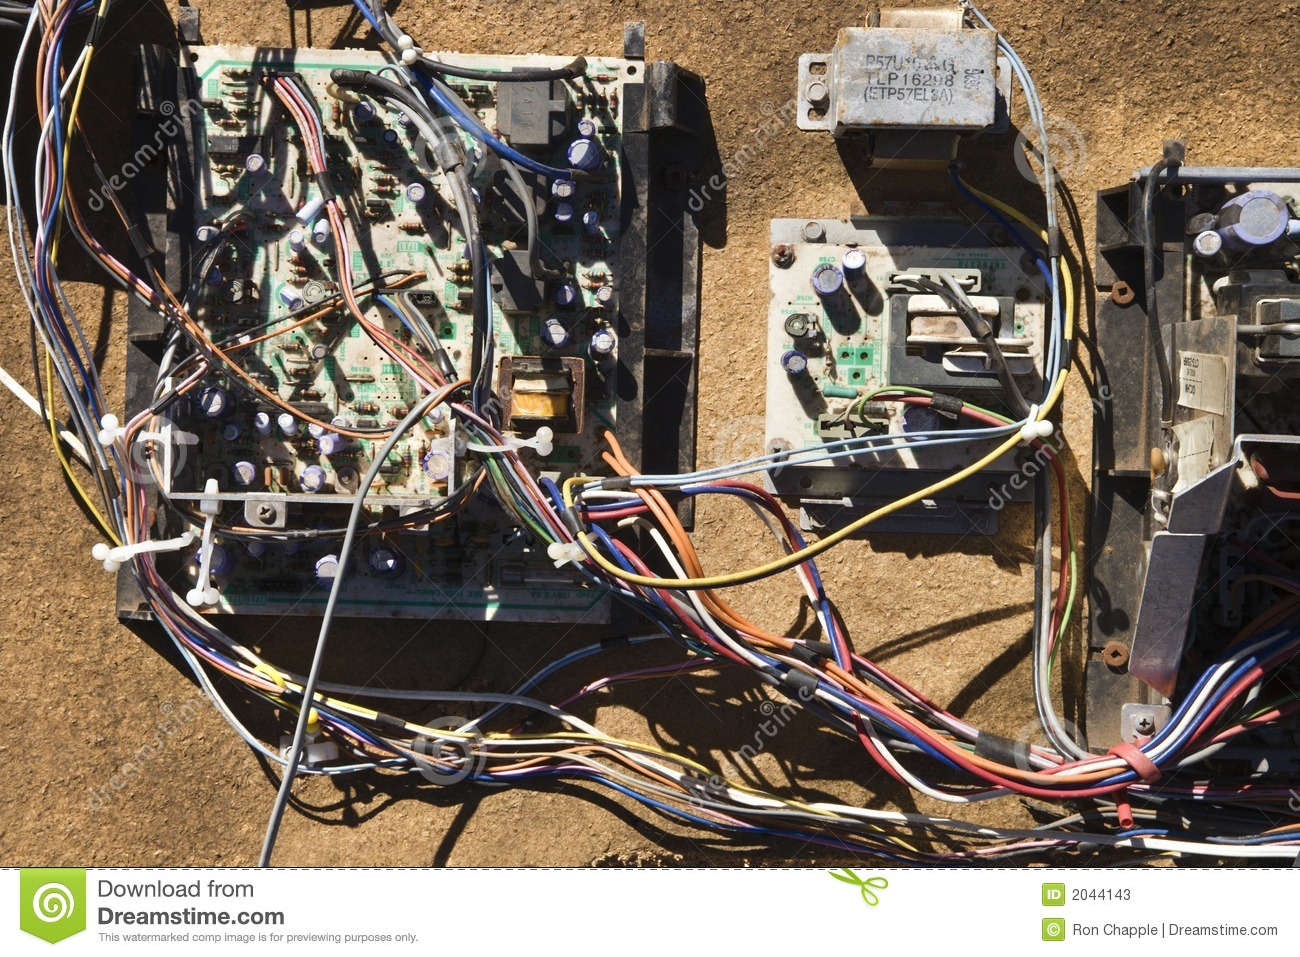 wires and electrical car parts stock image image of life rh dreamstime com race car wiring parts car stereo wiring parts